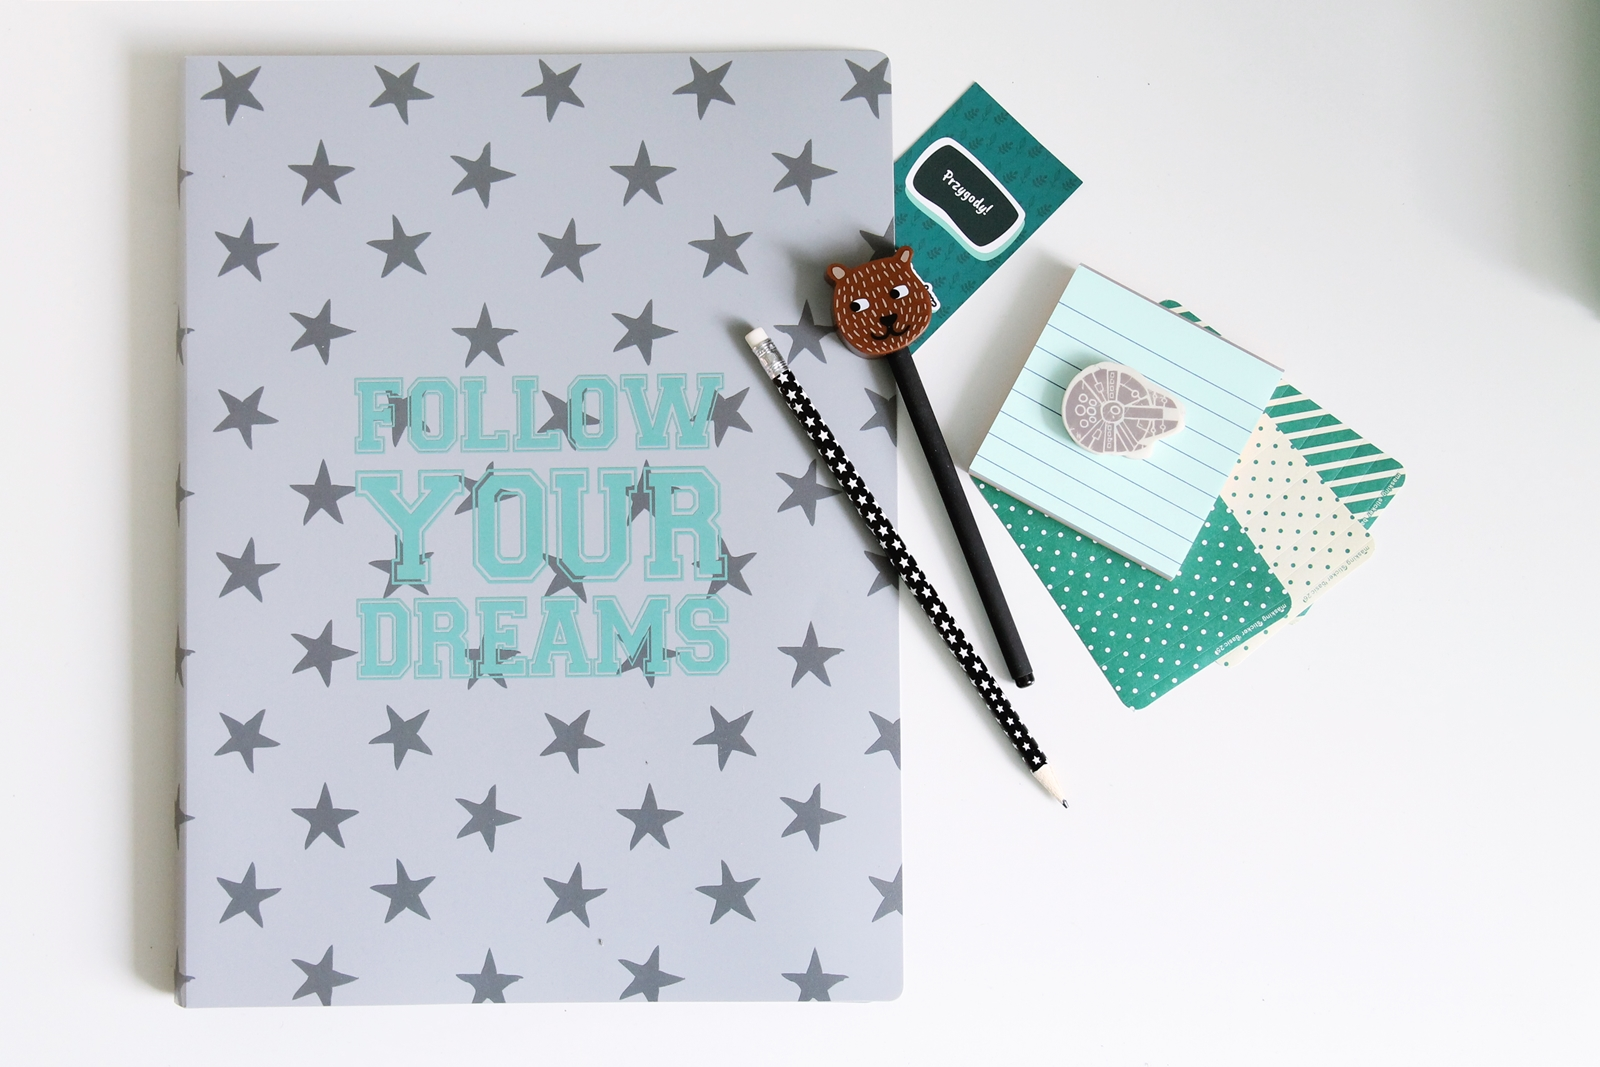 Stars, stationery lover, stationery addict